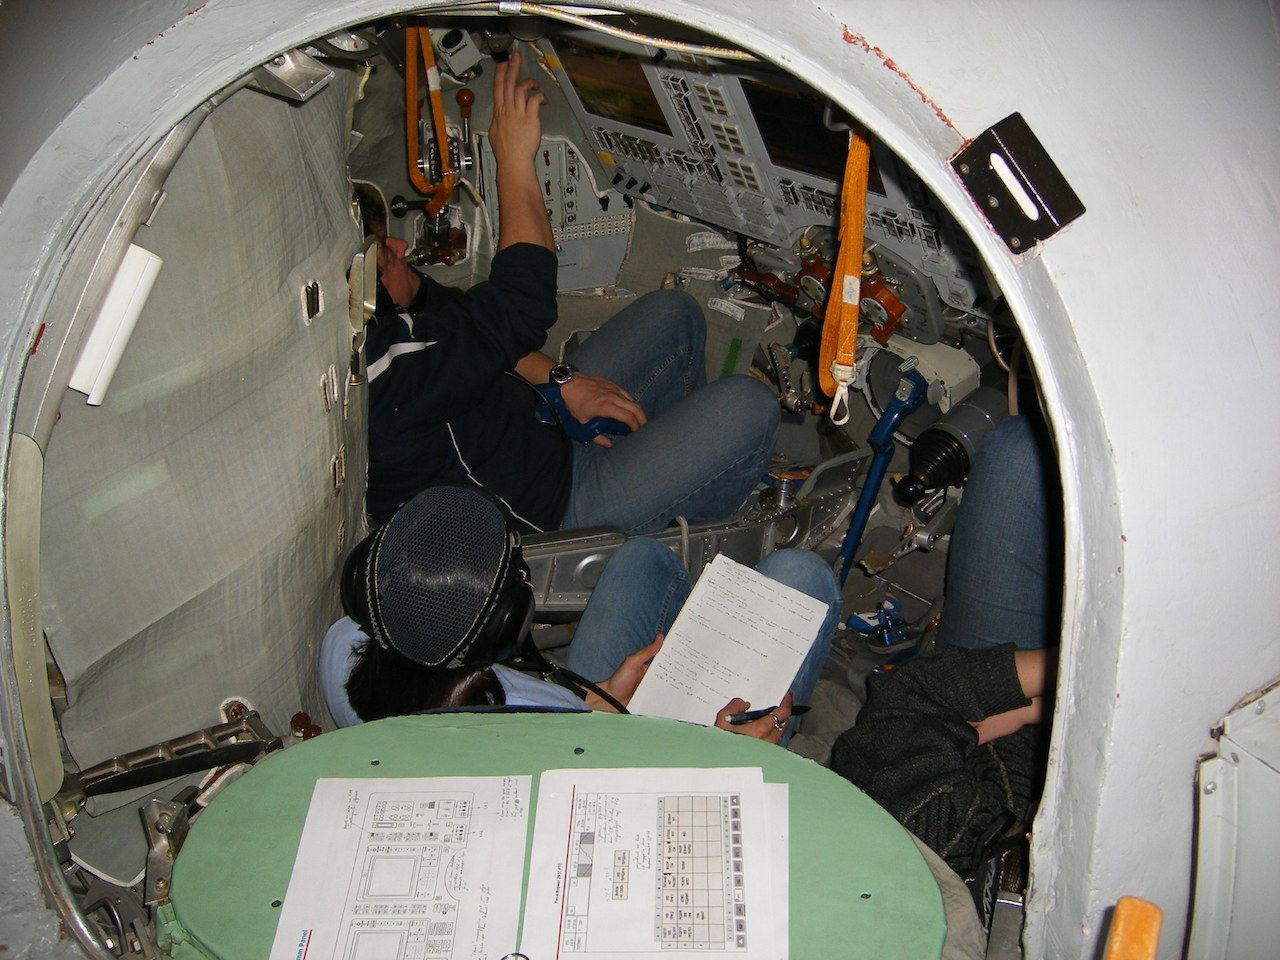 A look inside a Soyuz decent capsule